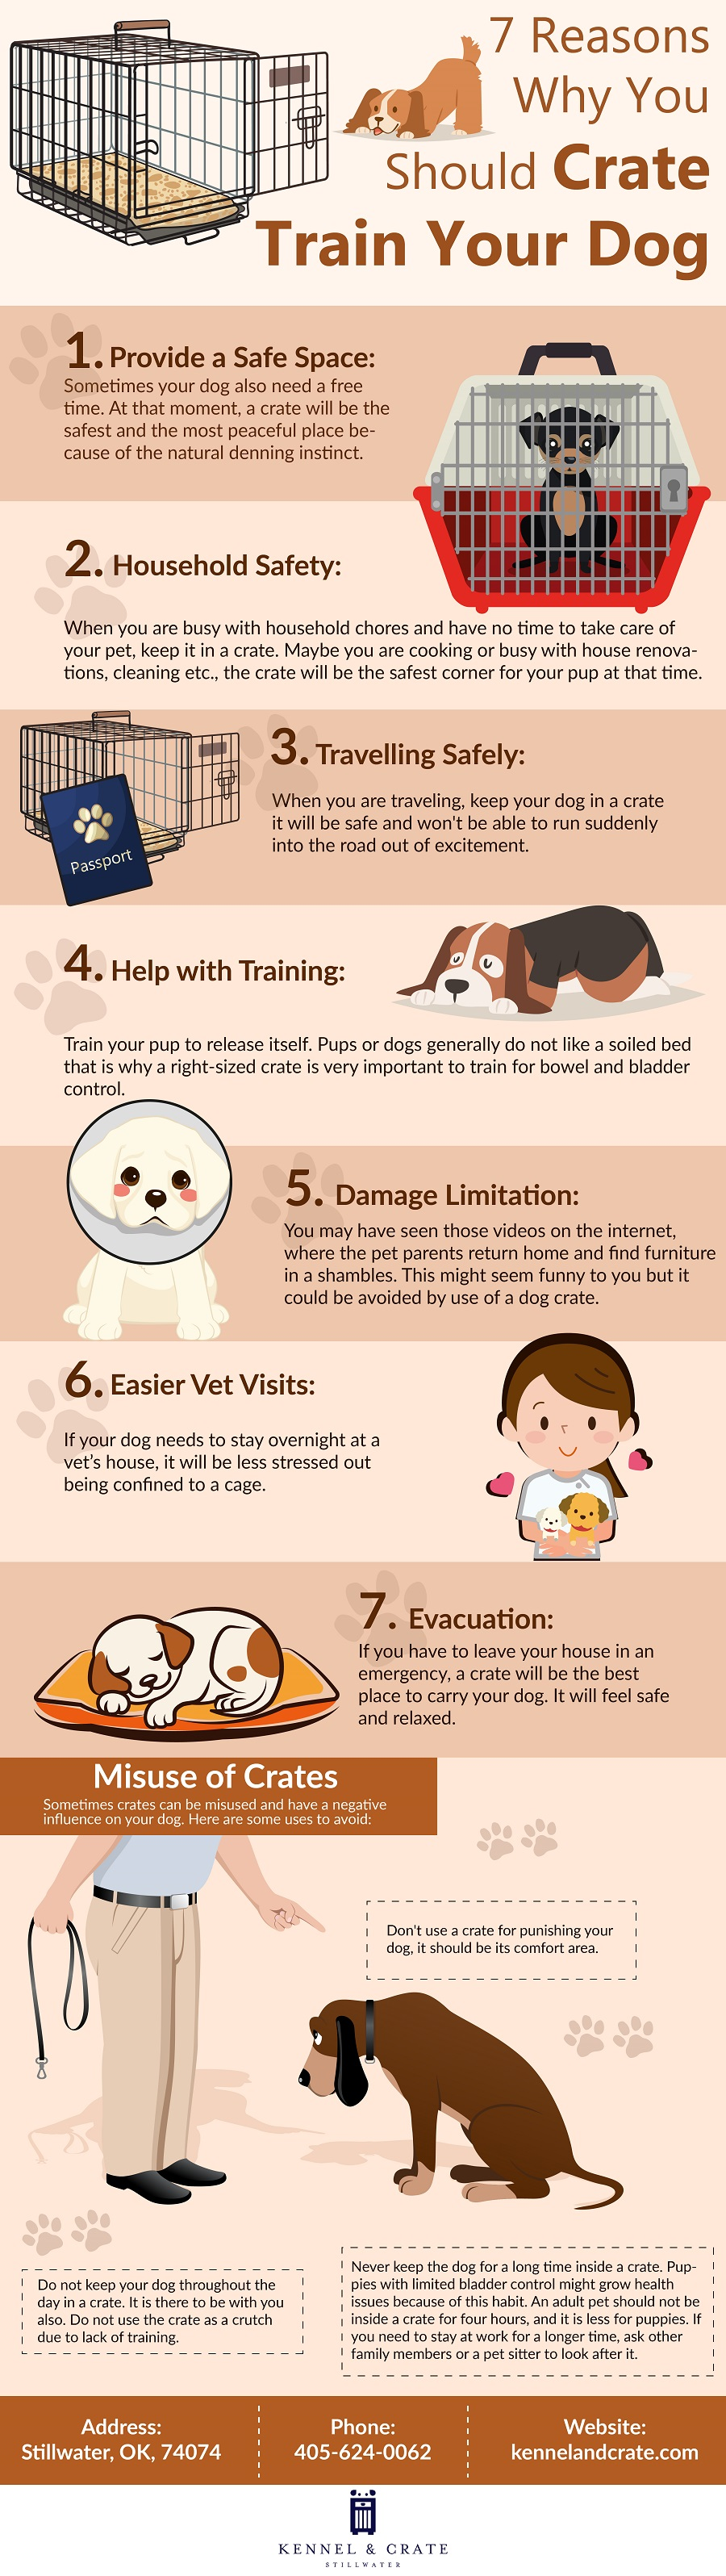 7 Reasons Why You Should Crate Train Your Dog.jpg